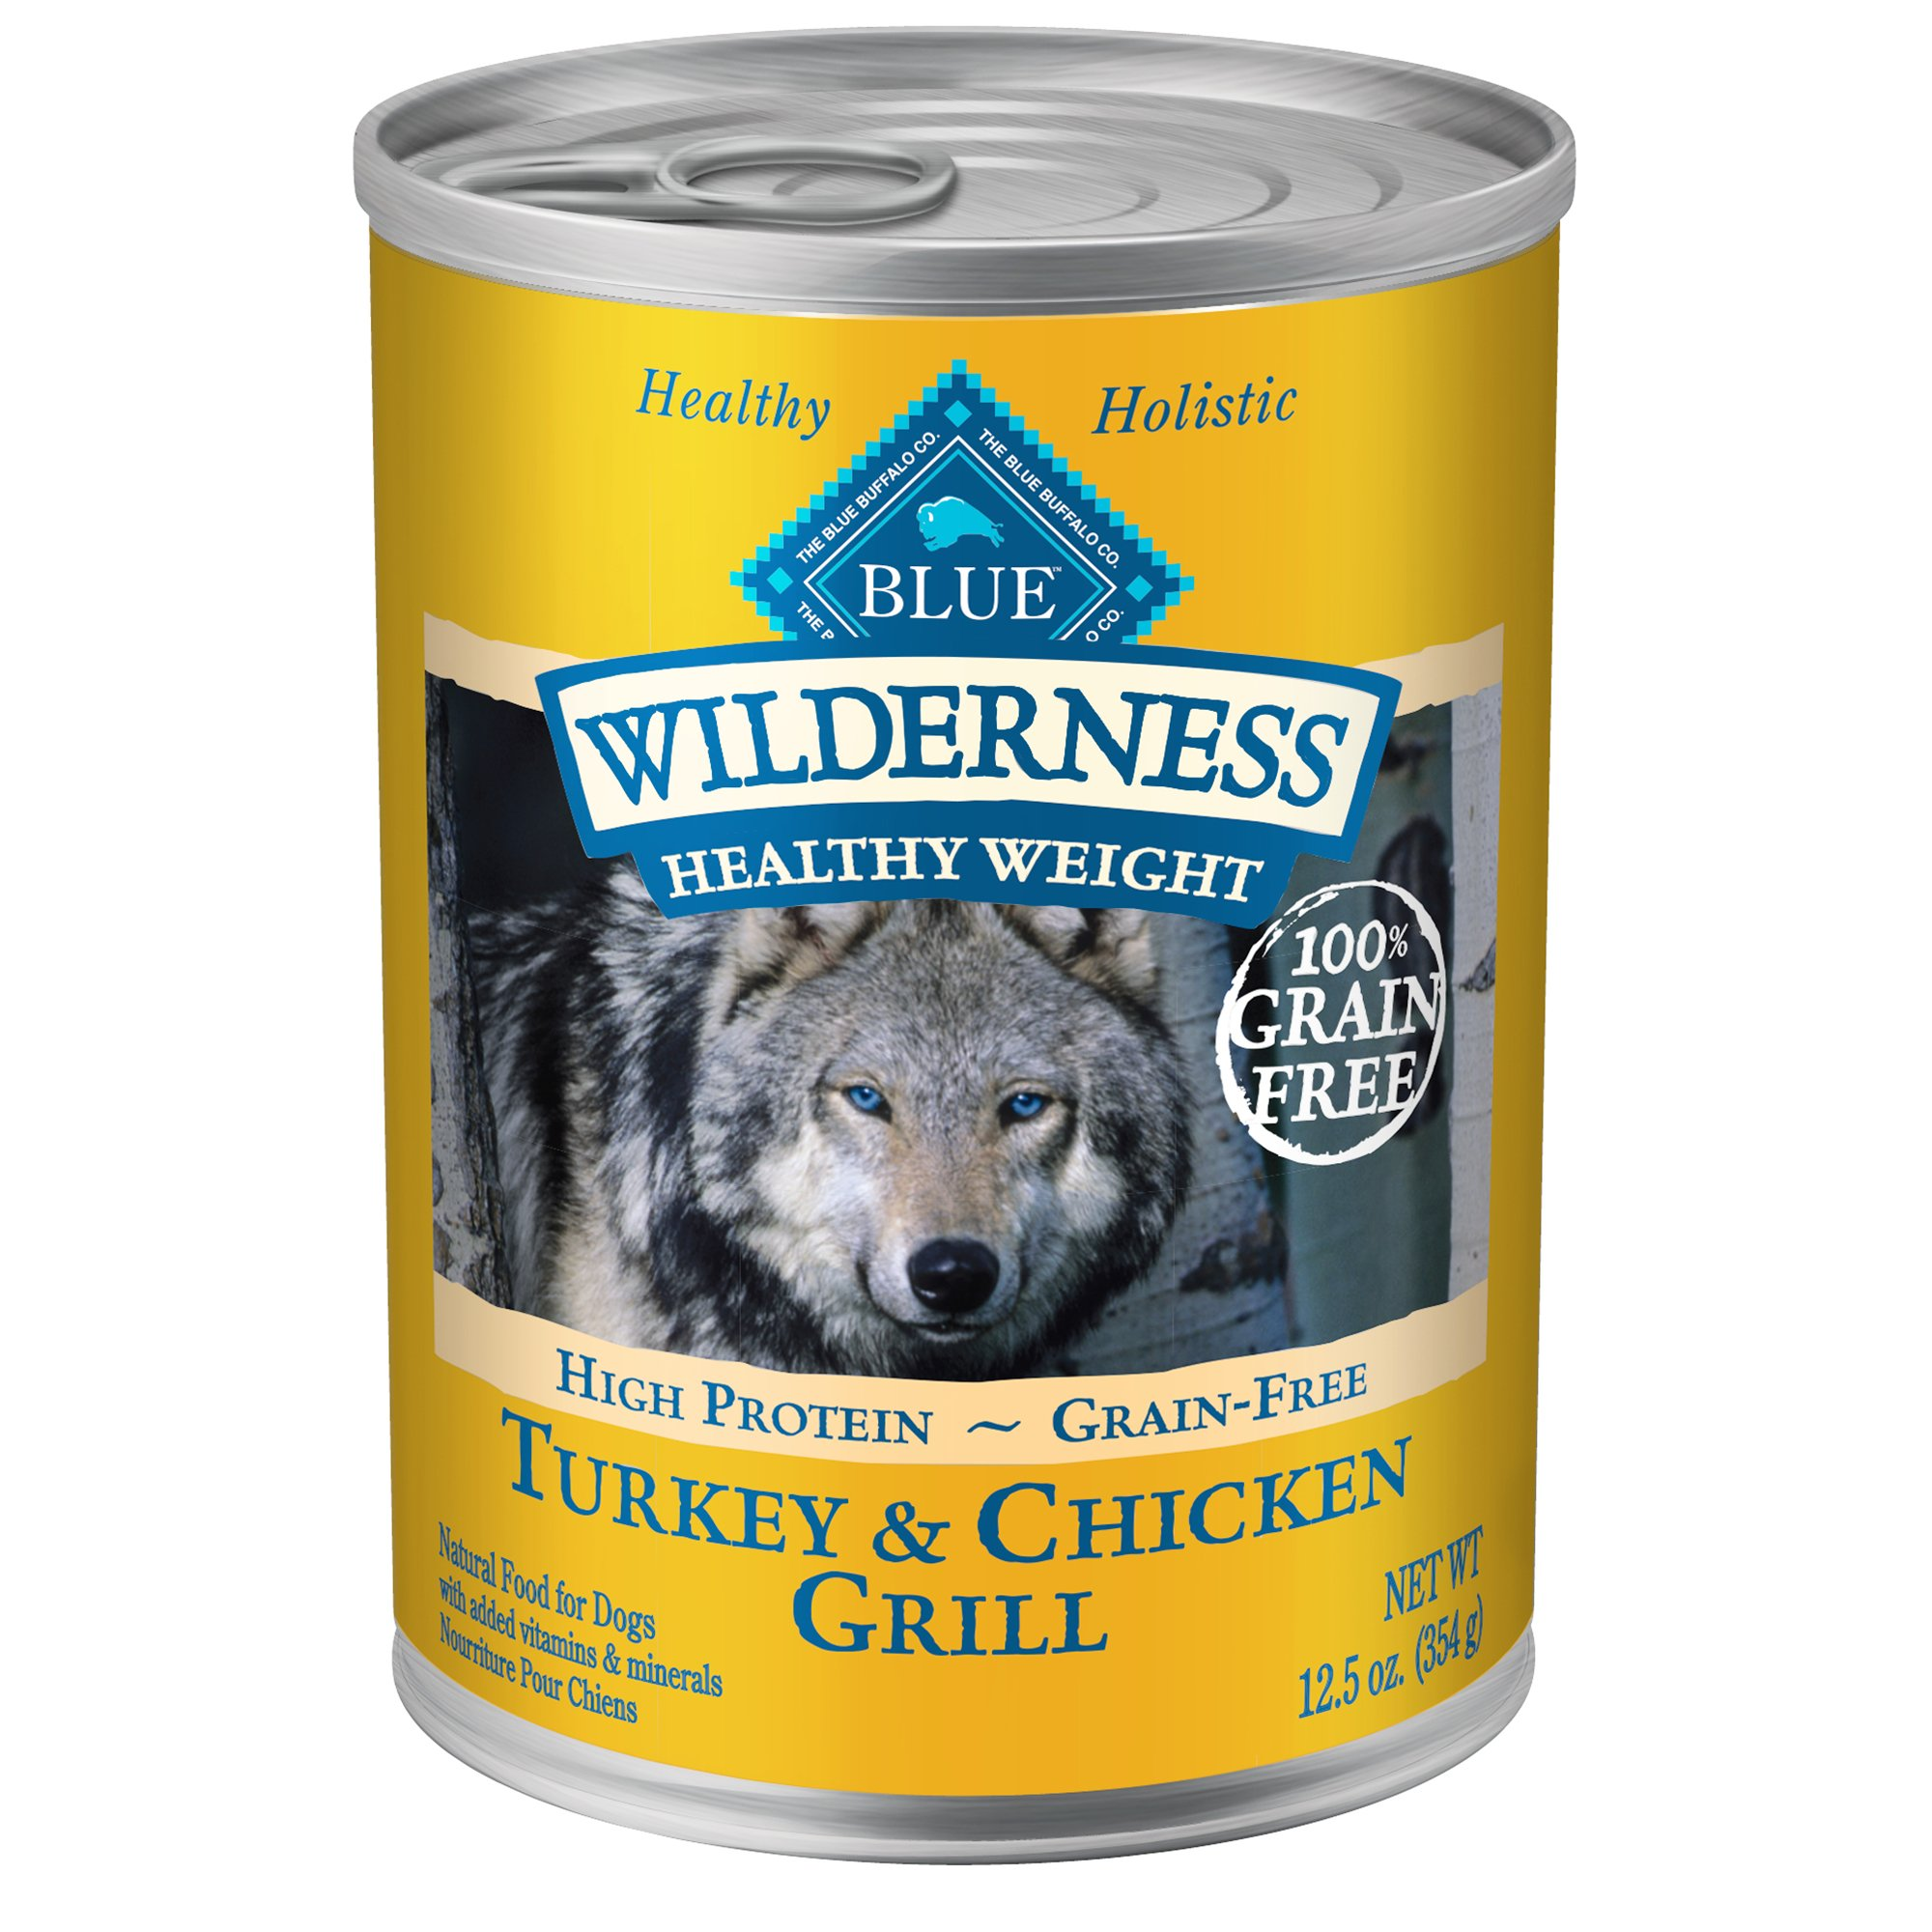 Blue Buffalo Wilderness Adult Healthy Weight Turkey and Chicken Canned Dog Food